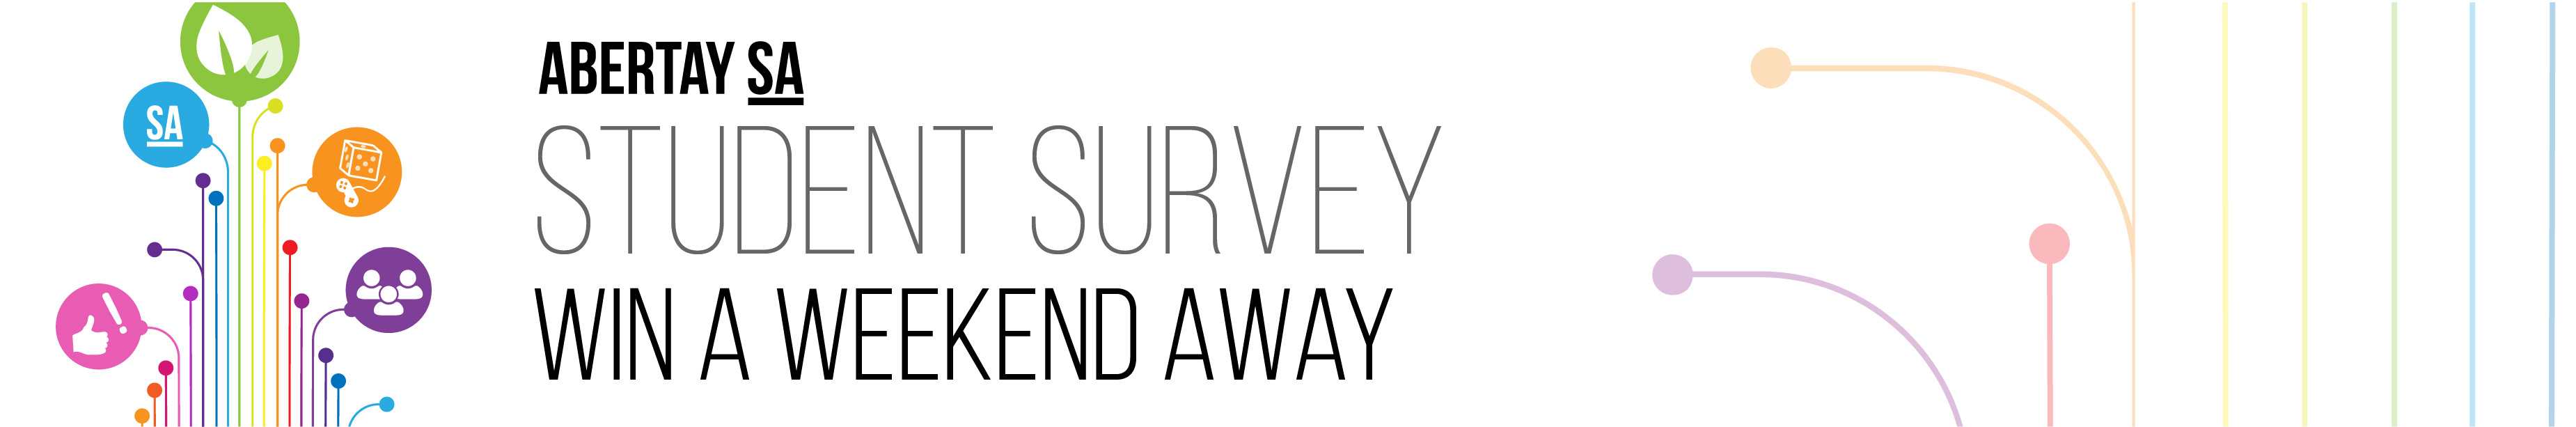 AbertaySA: Student Survey. Enter for a chance to win a weekend away.